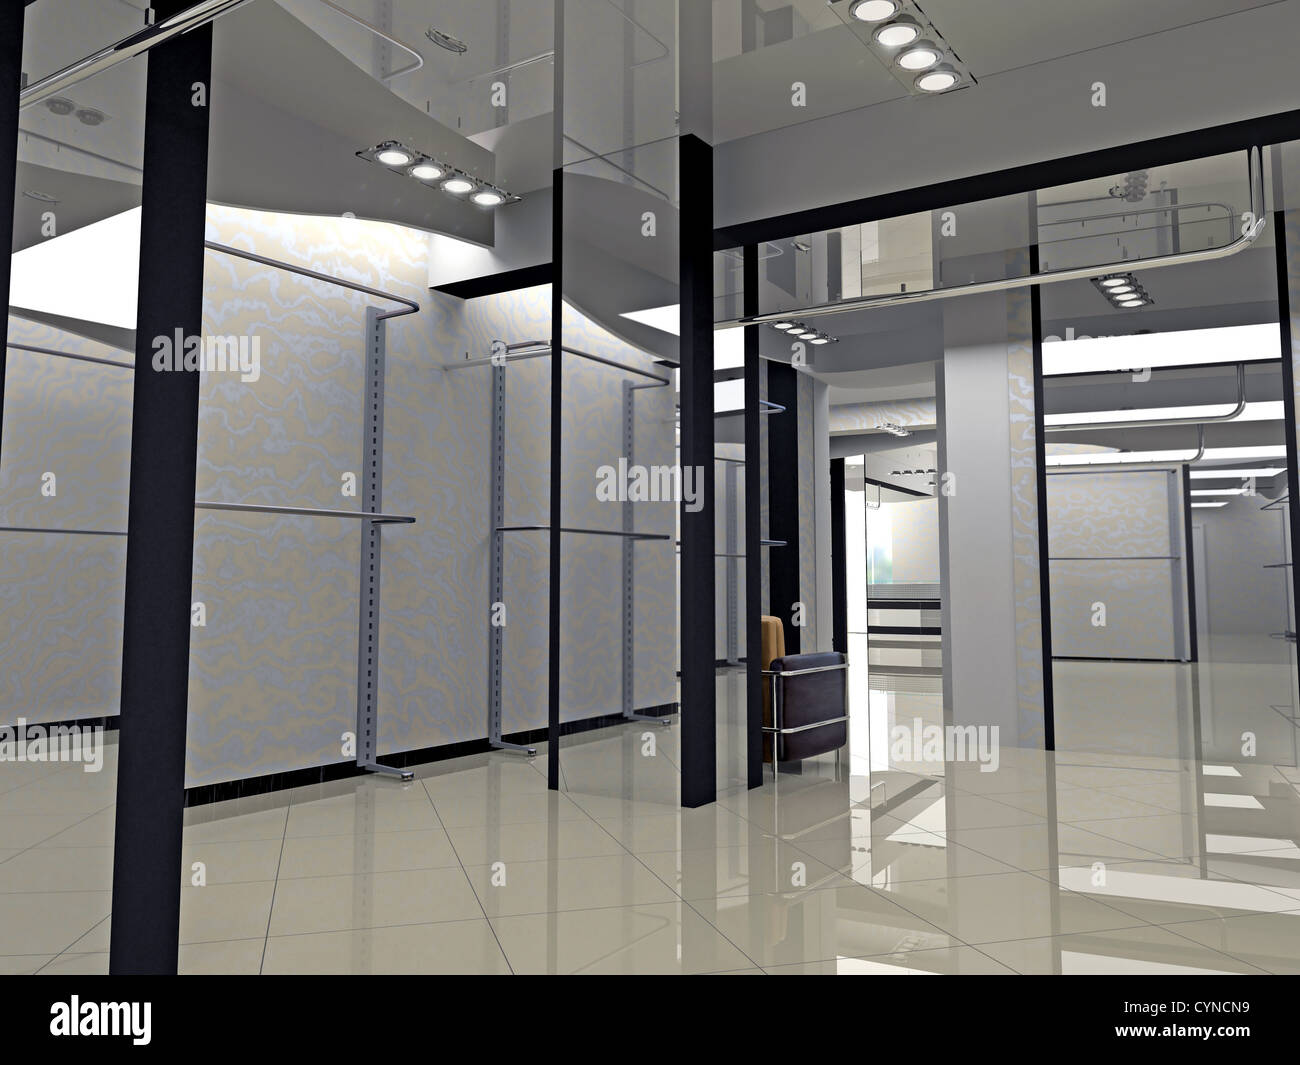 Modern Shop Interior Design Computer Generated Image Stock Photo 51487445 Alamy